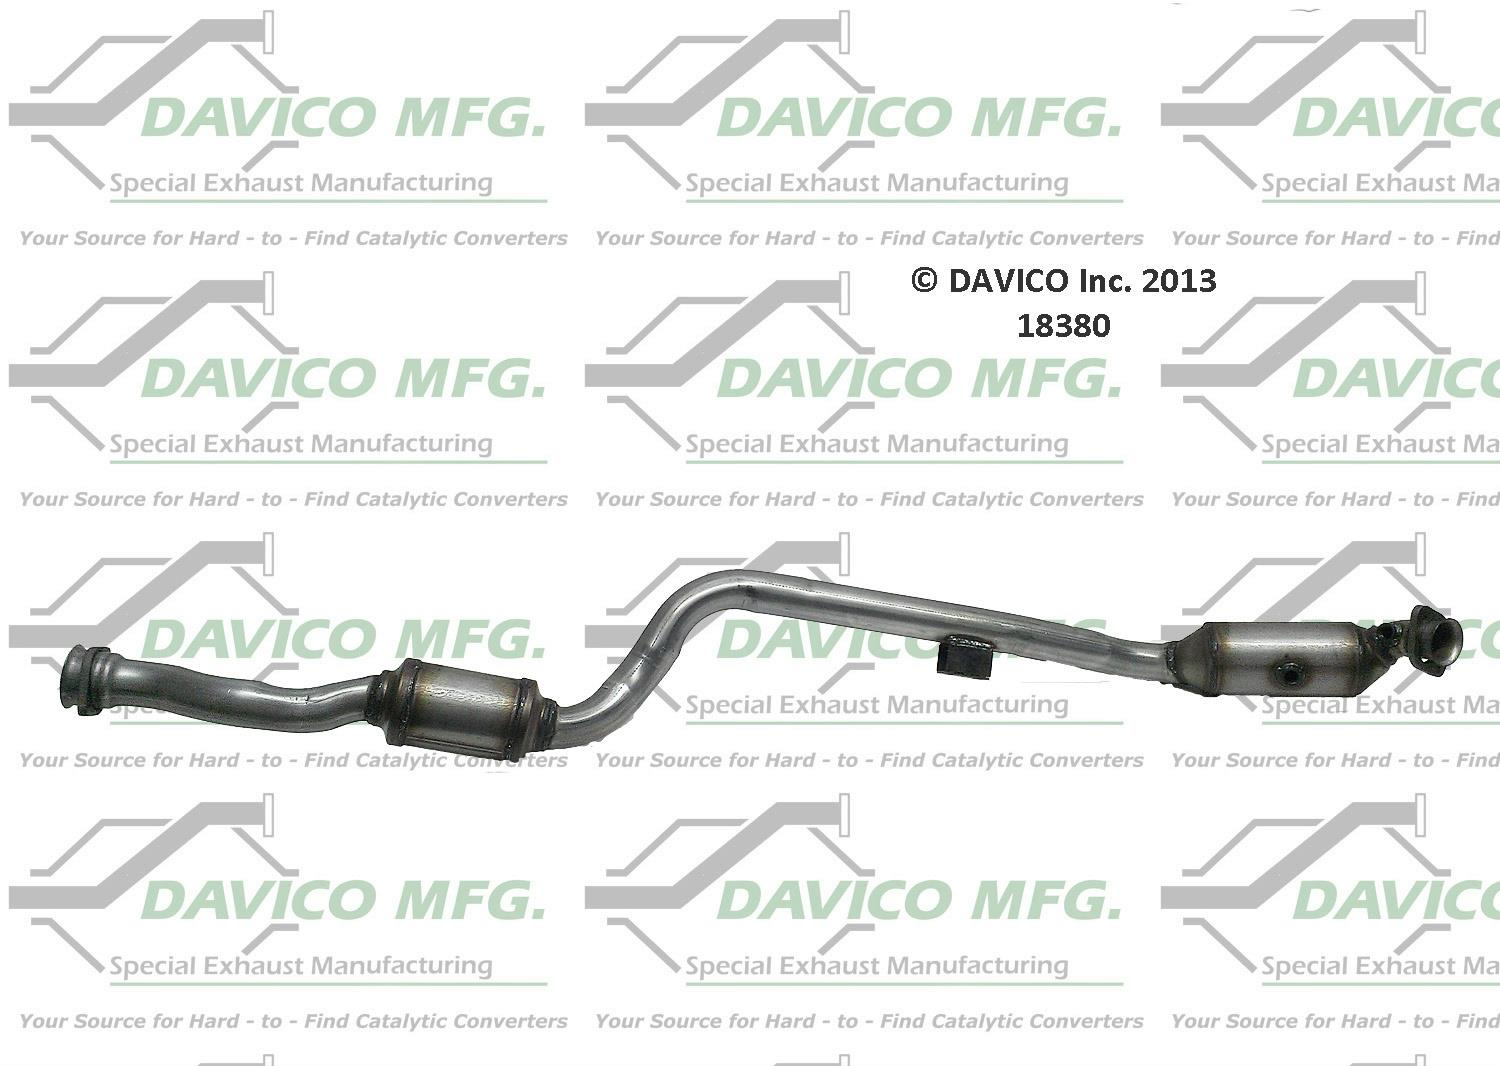 CLS550 E550 Drivers Side Engine Pipe Dual Catalytic